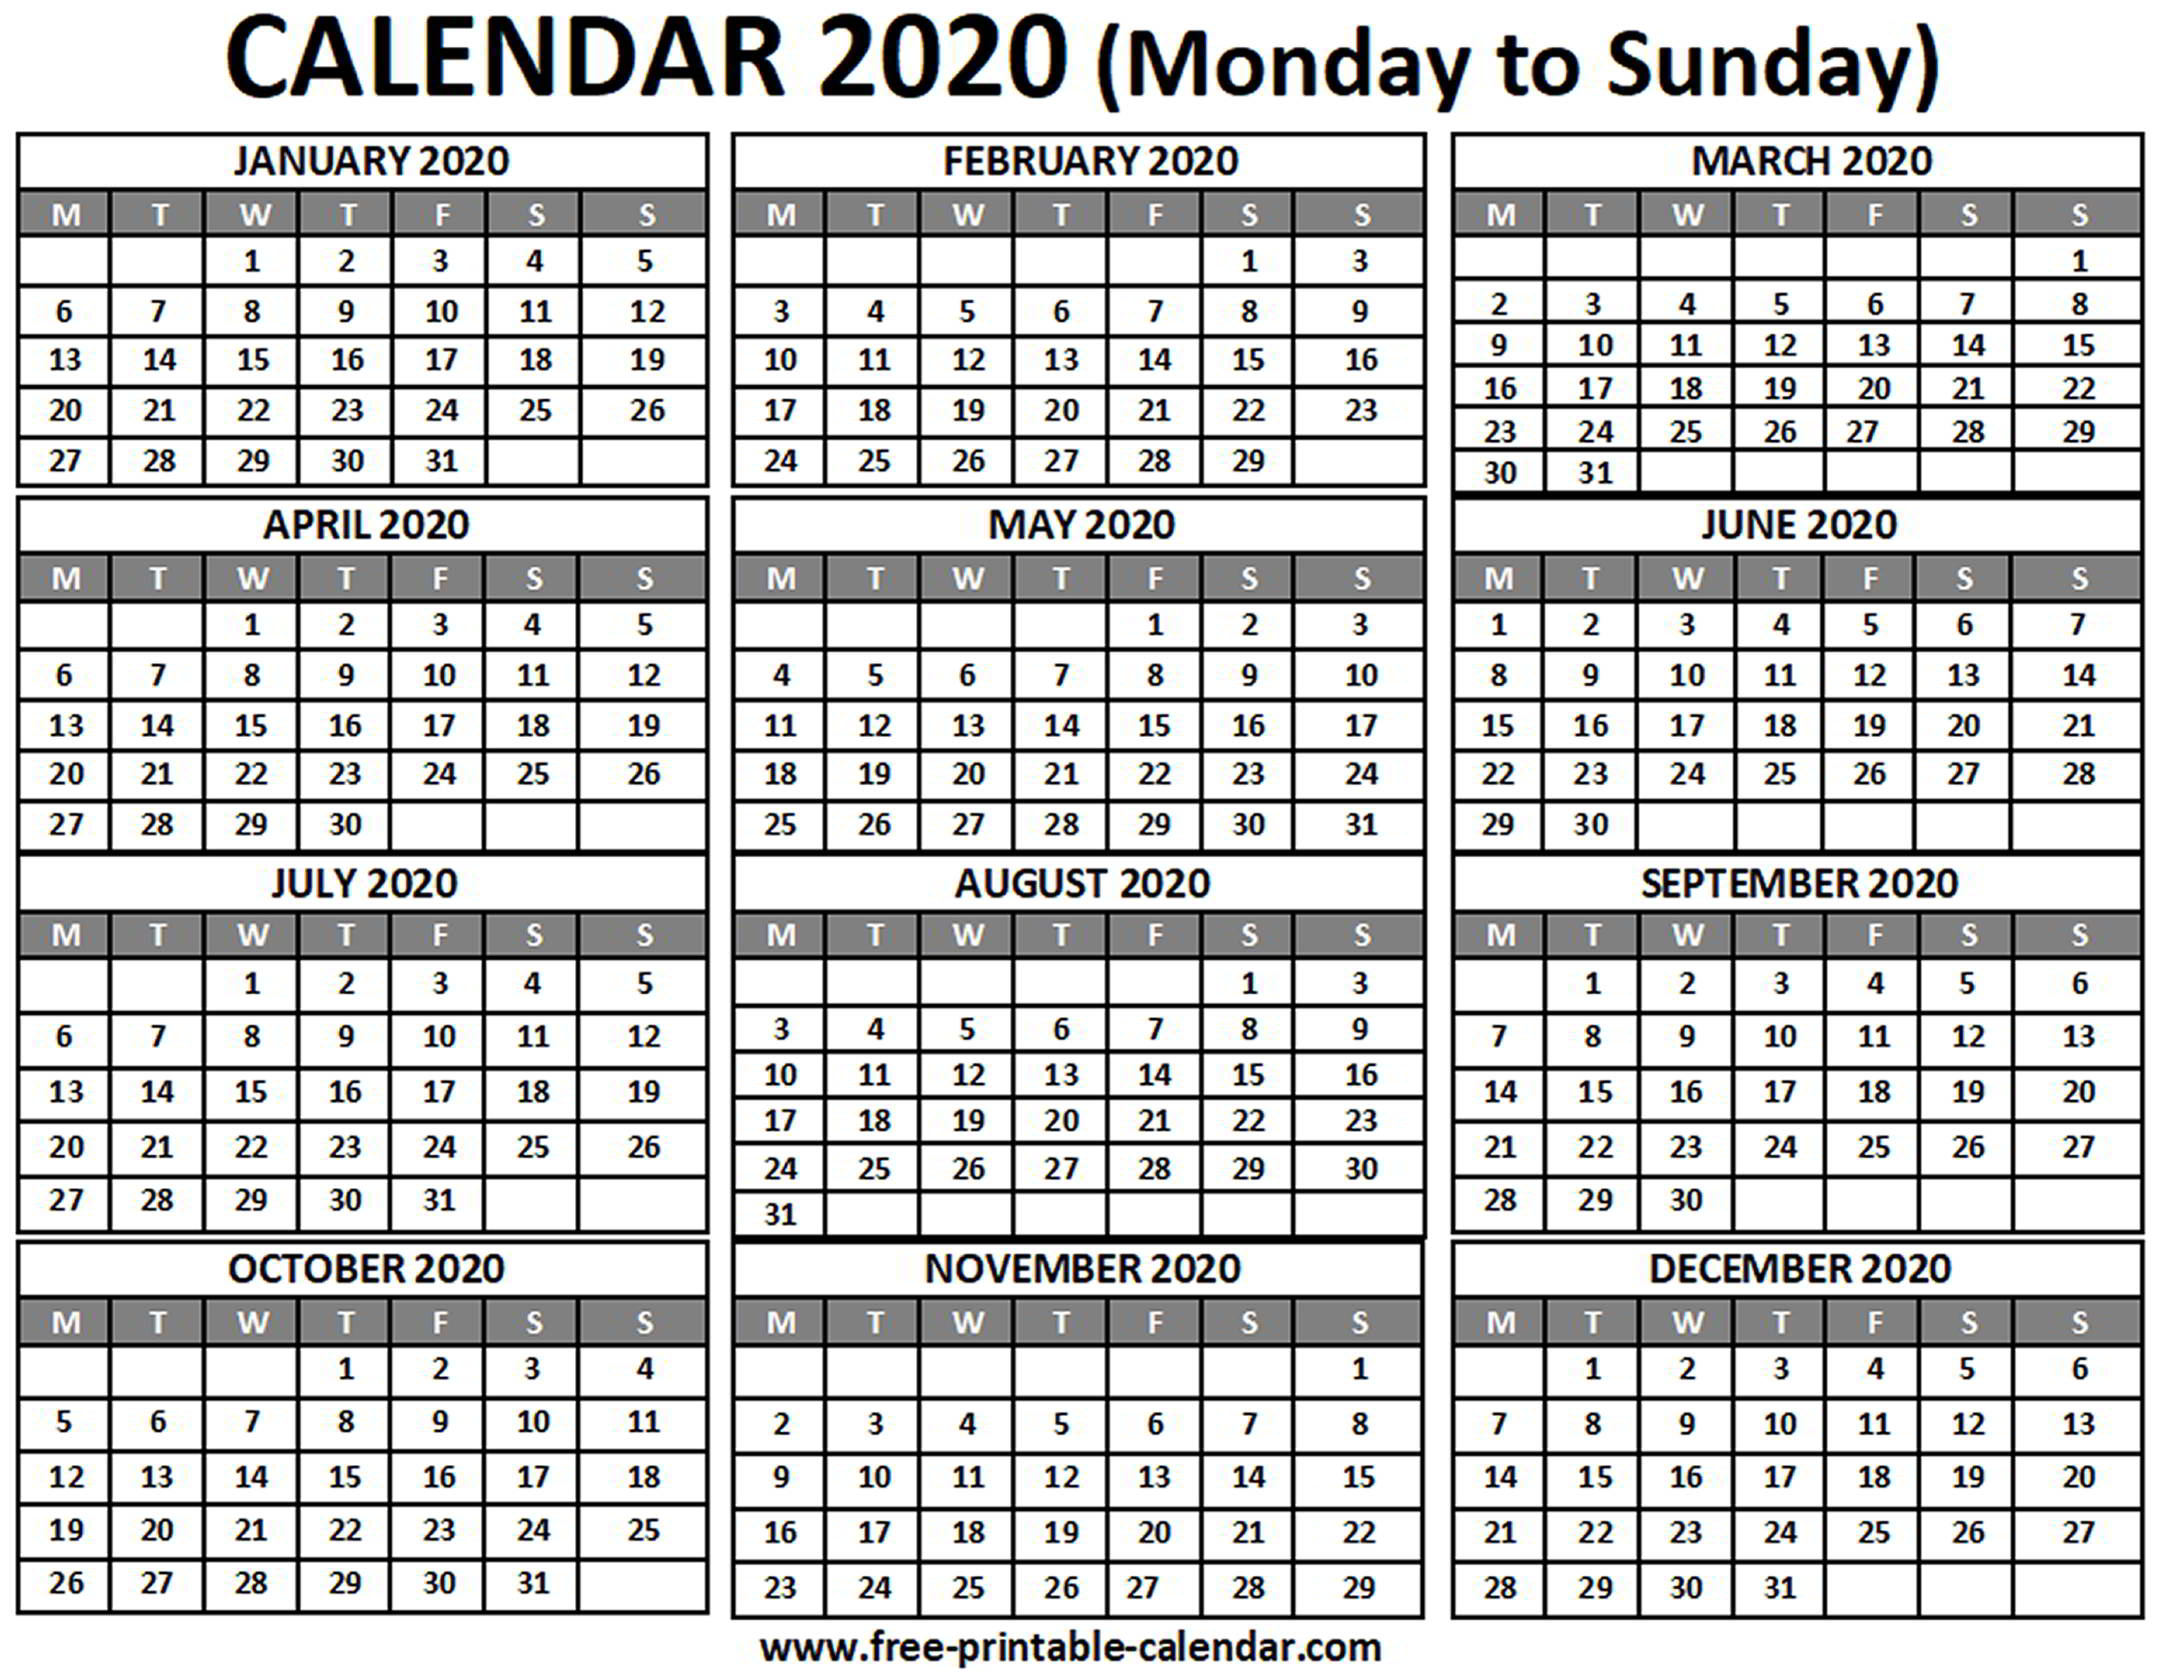 2020 Calendar - Free-Printable-Calendar within Calender 2020 Template Monday To Sunday